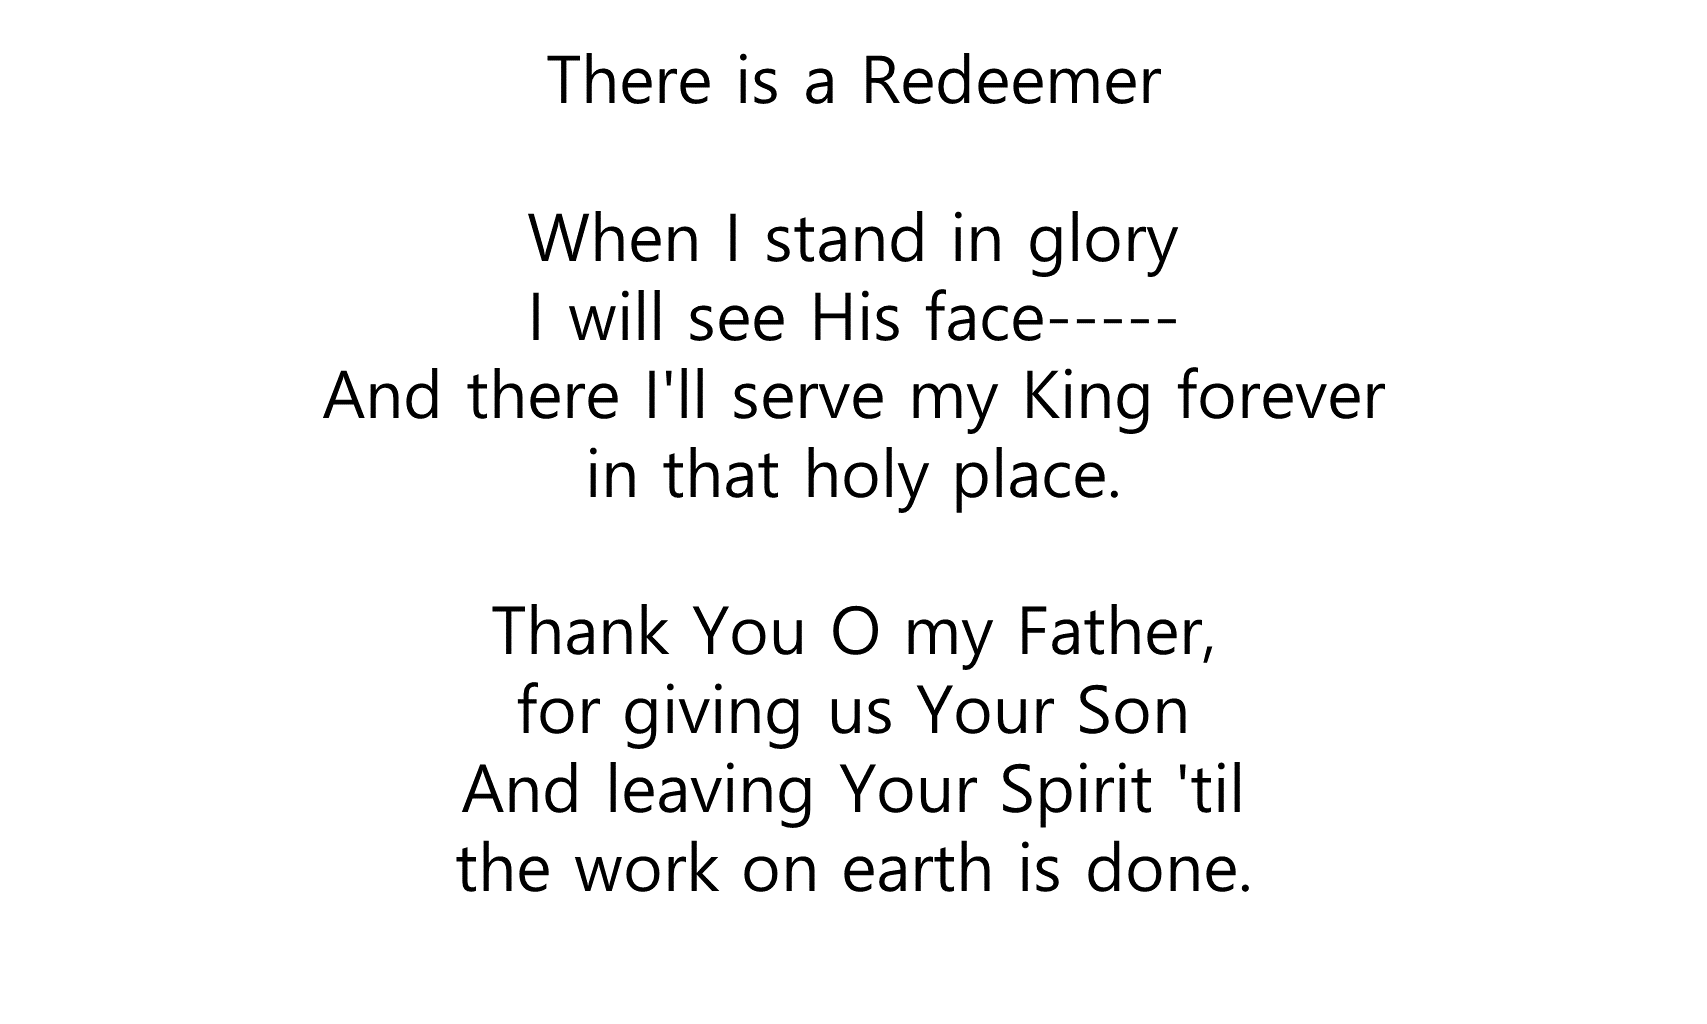 WCC-05 - Worshipping Our Savior Who Redeemed Us (29)